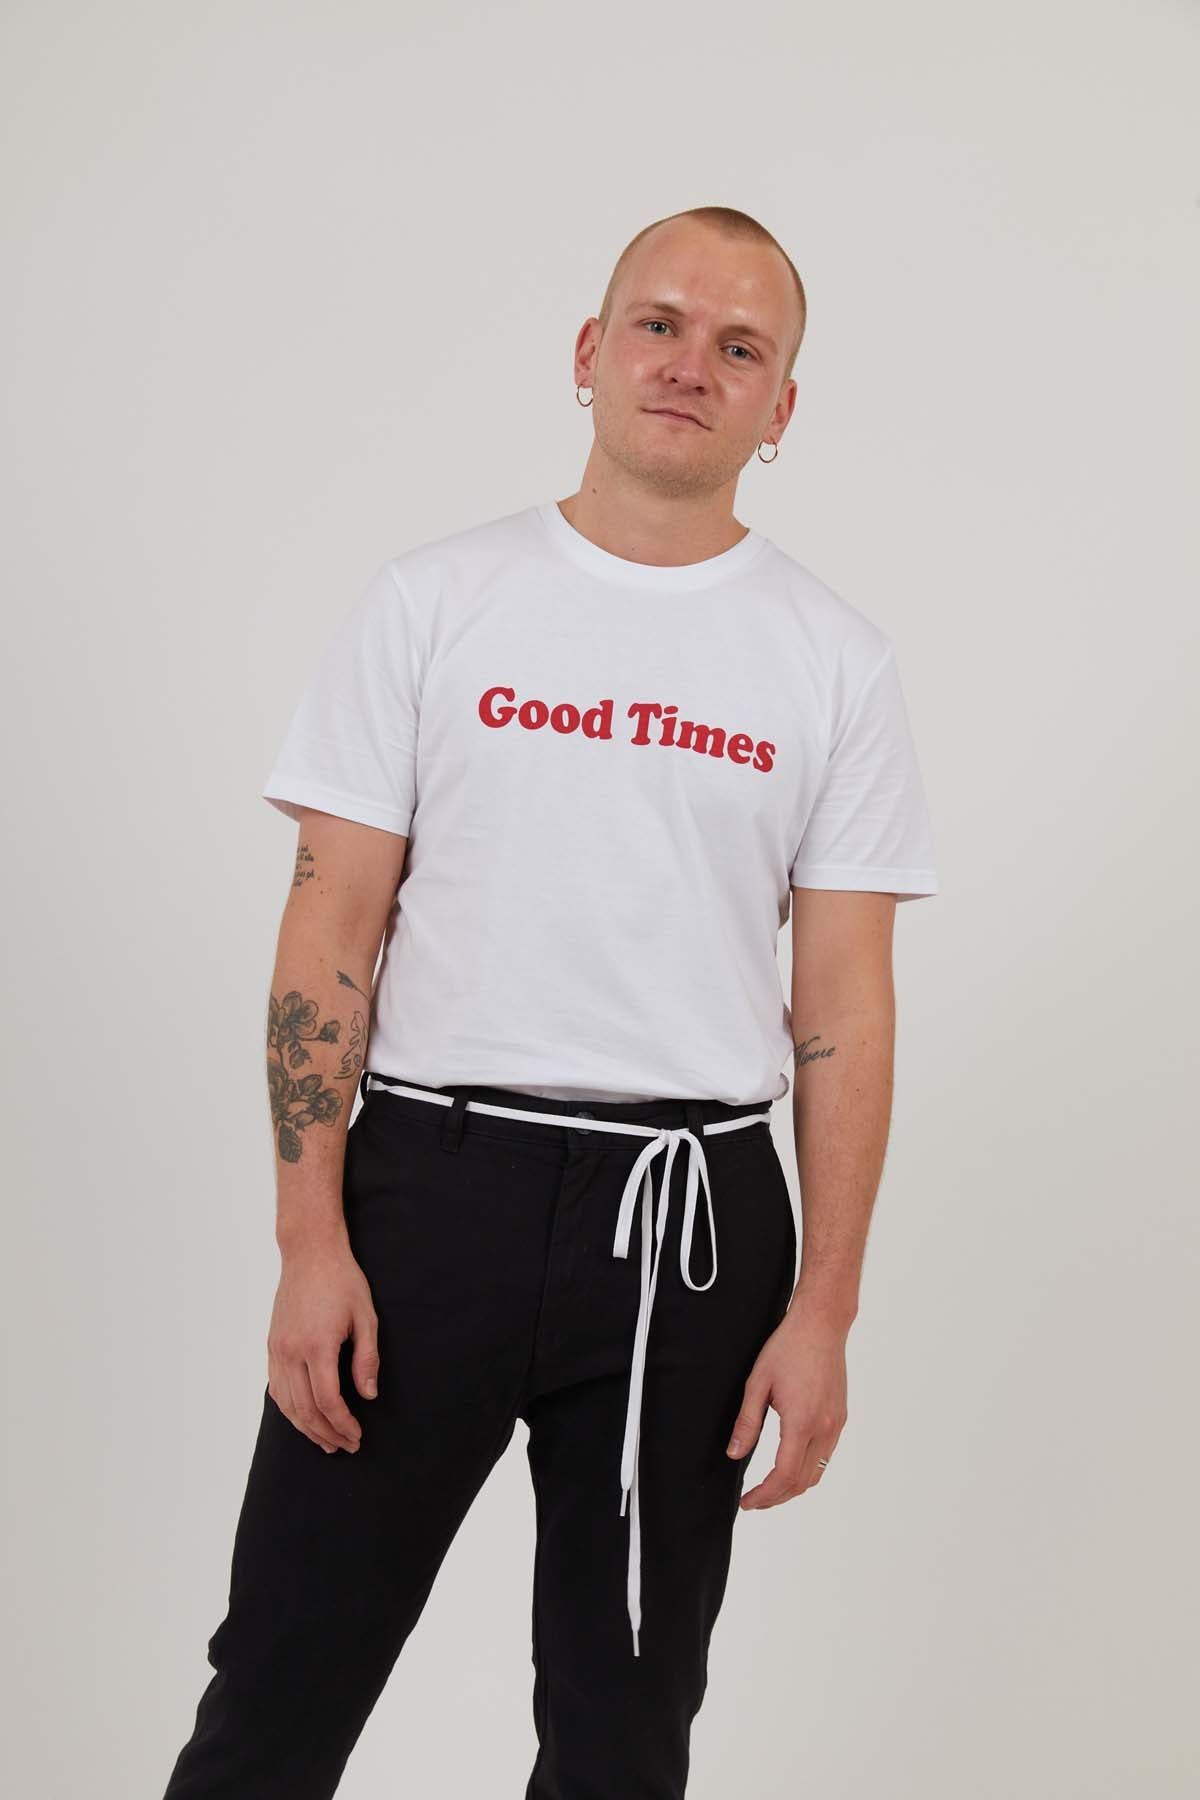 Good Times - Mens Print Tee - White